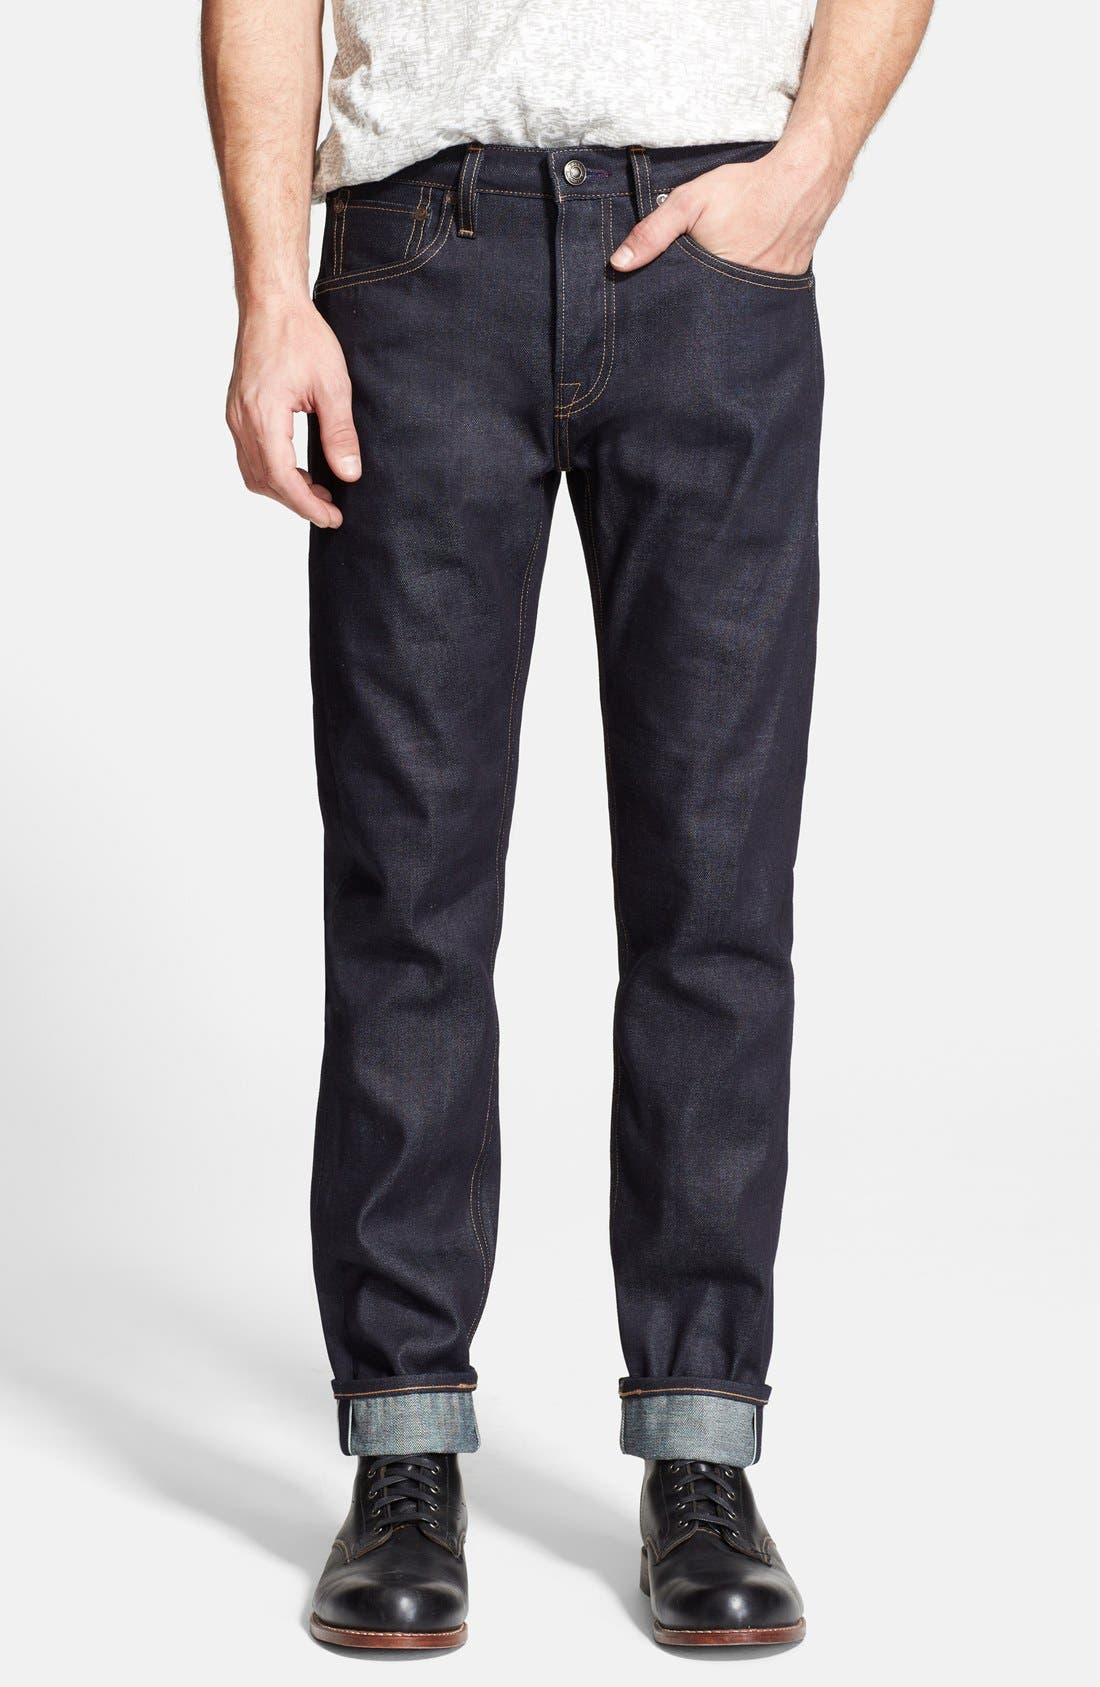 LEVI'S<SUP>®</SUP> MADE & CRAFTED<SUP>™</SUP>,                             'Tack' Slim Fit Jeans,                             Main thumbnail 1, color,                             400